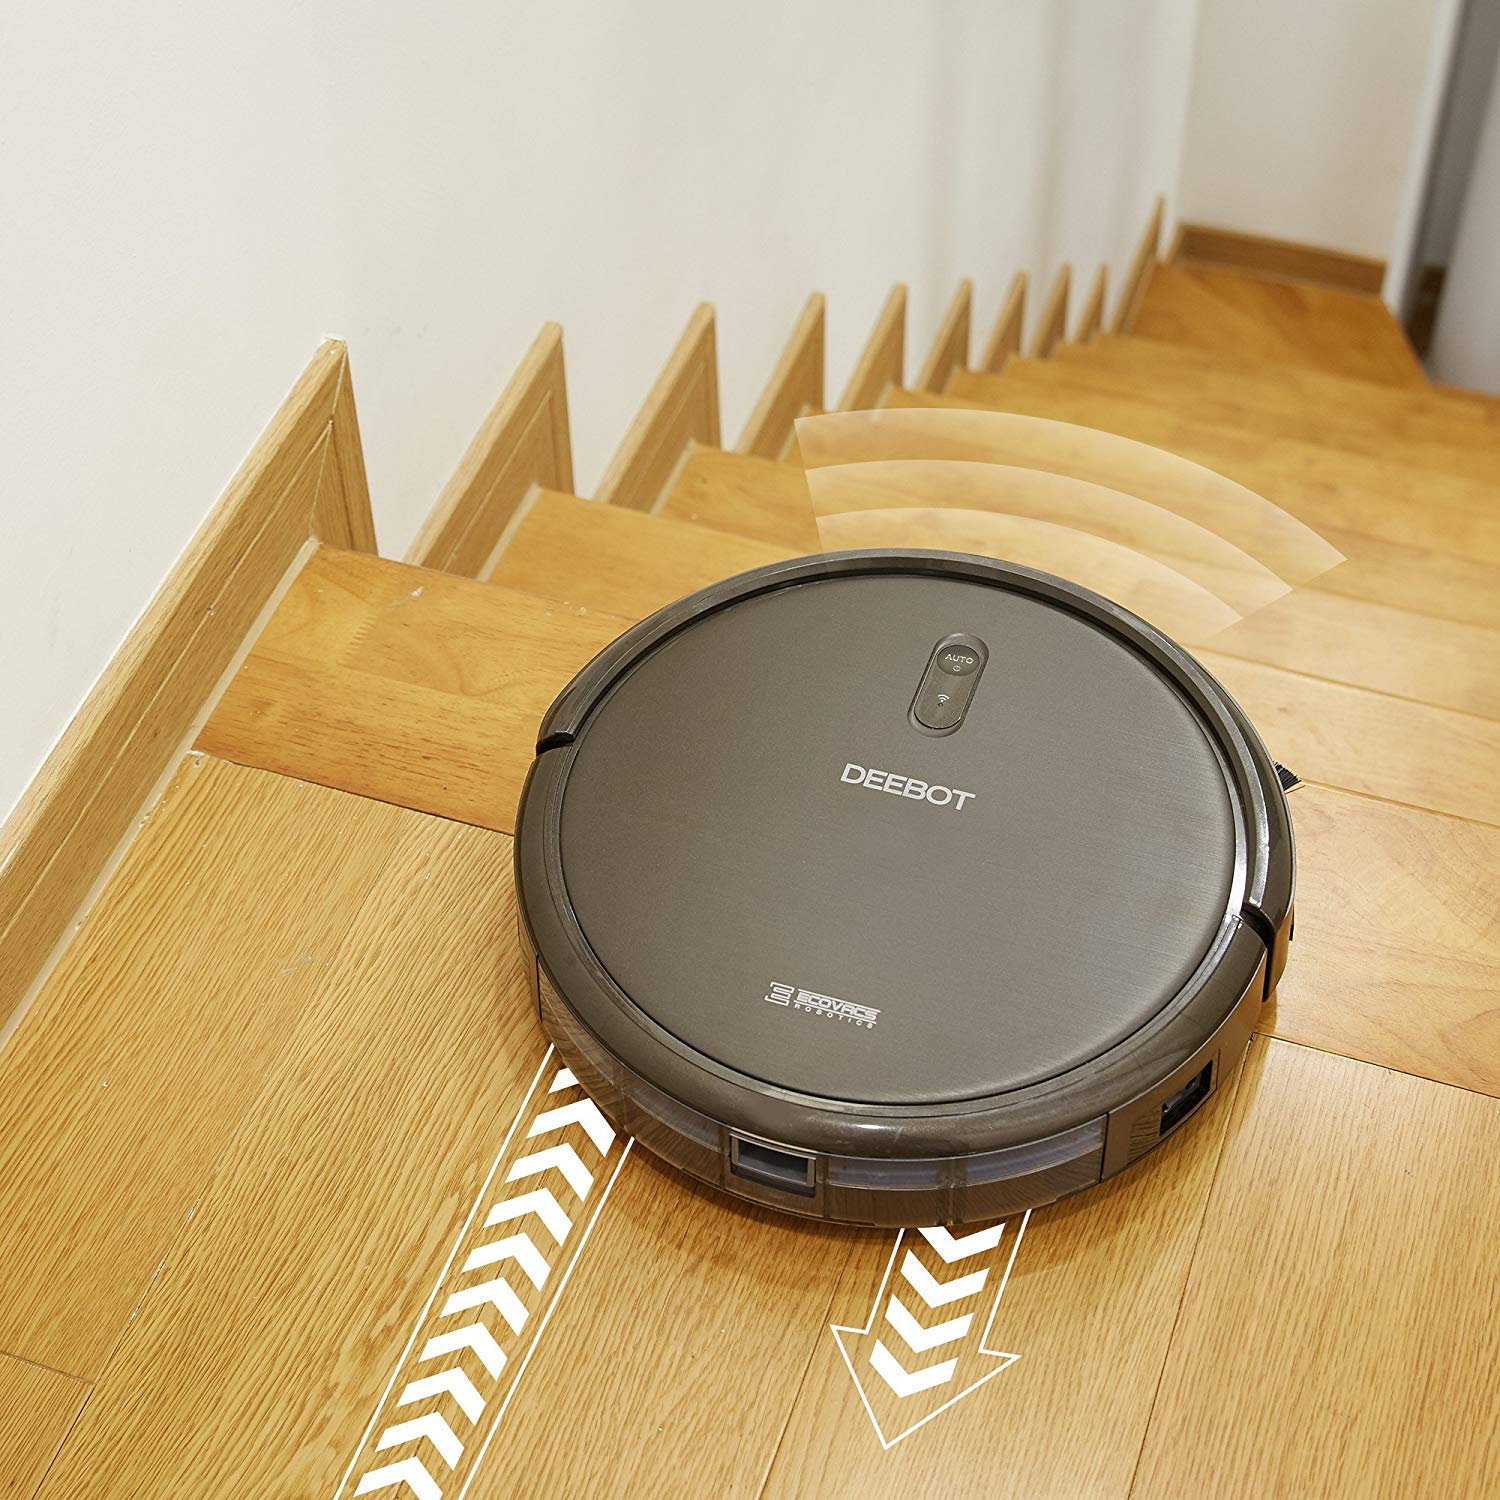 Ecovacs Deebot Smart Vacuum Cleaner